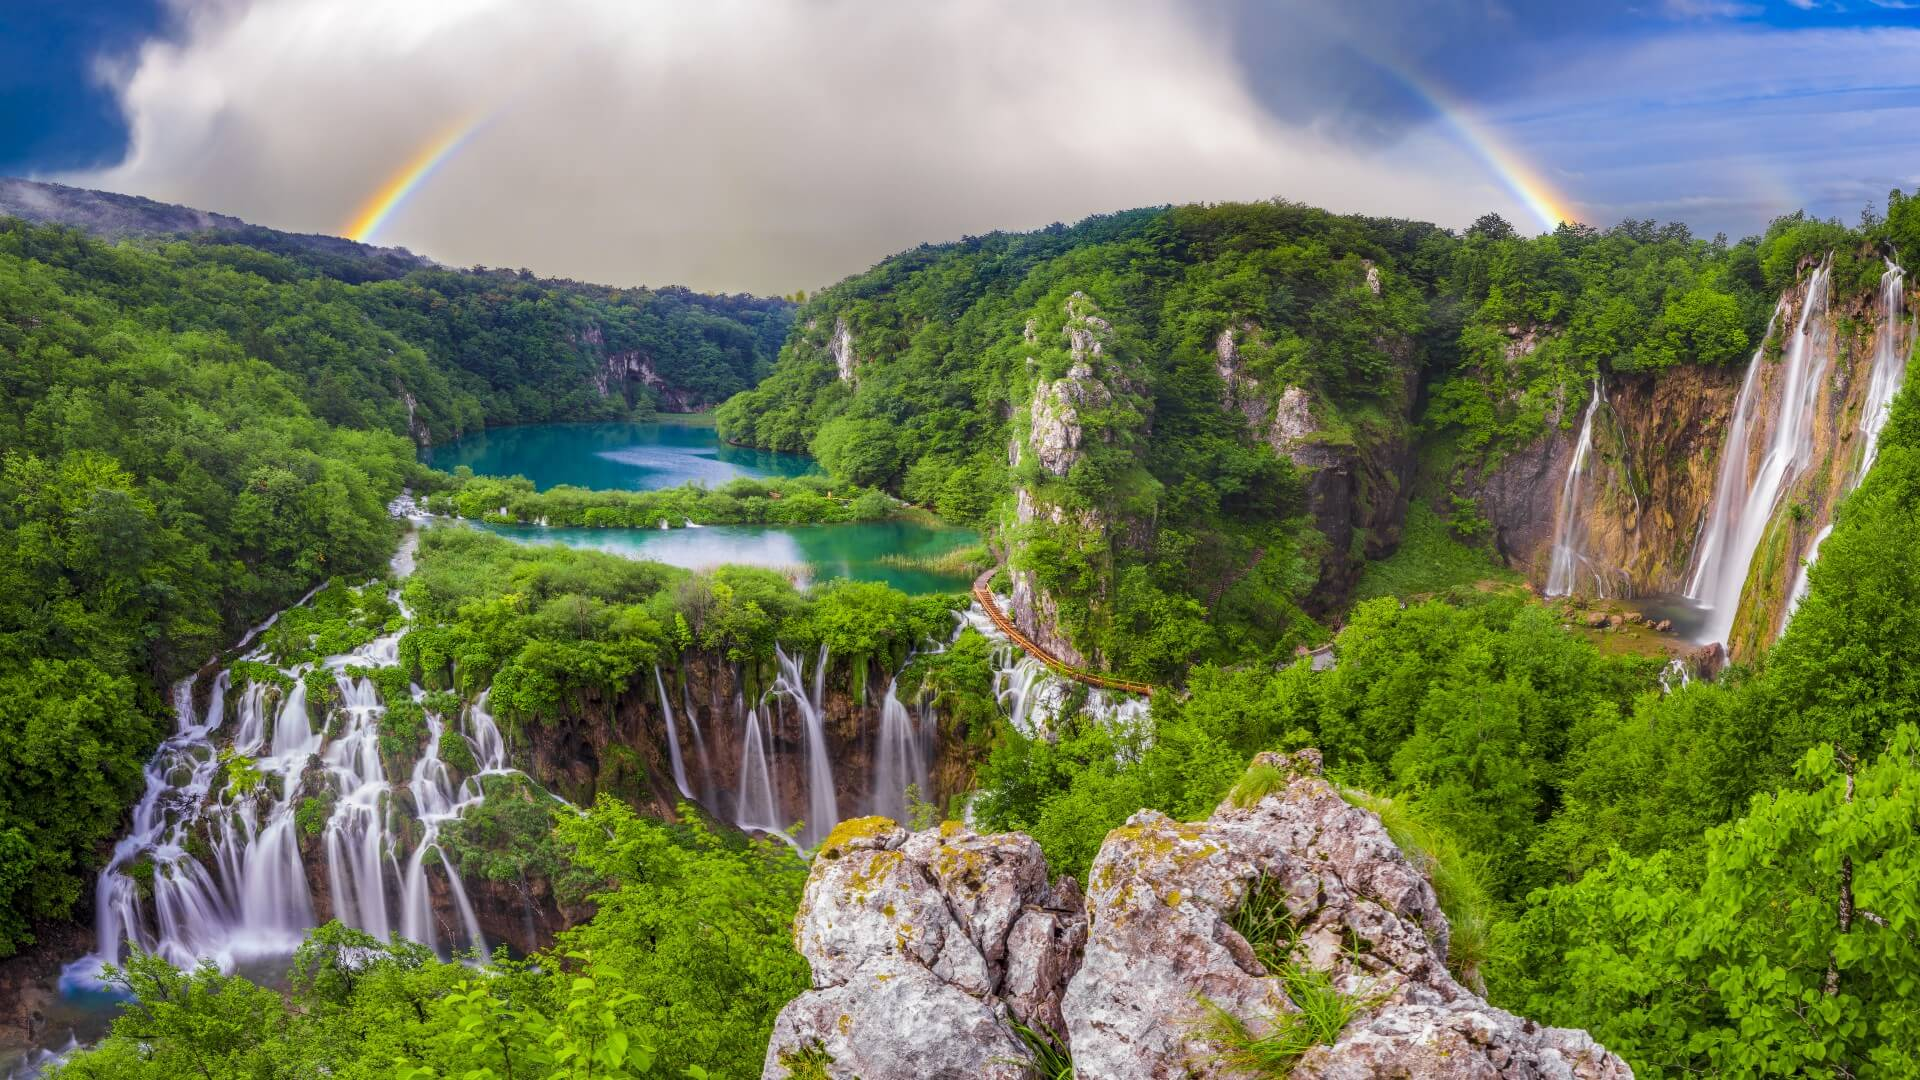 Plitvice Lakes National Park, Croatia | A Guide To The Amazing Lakes